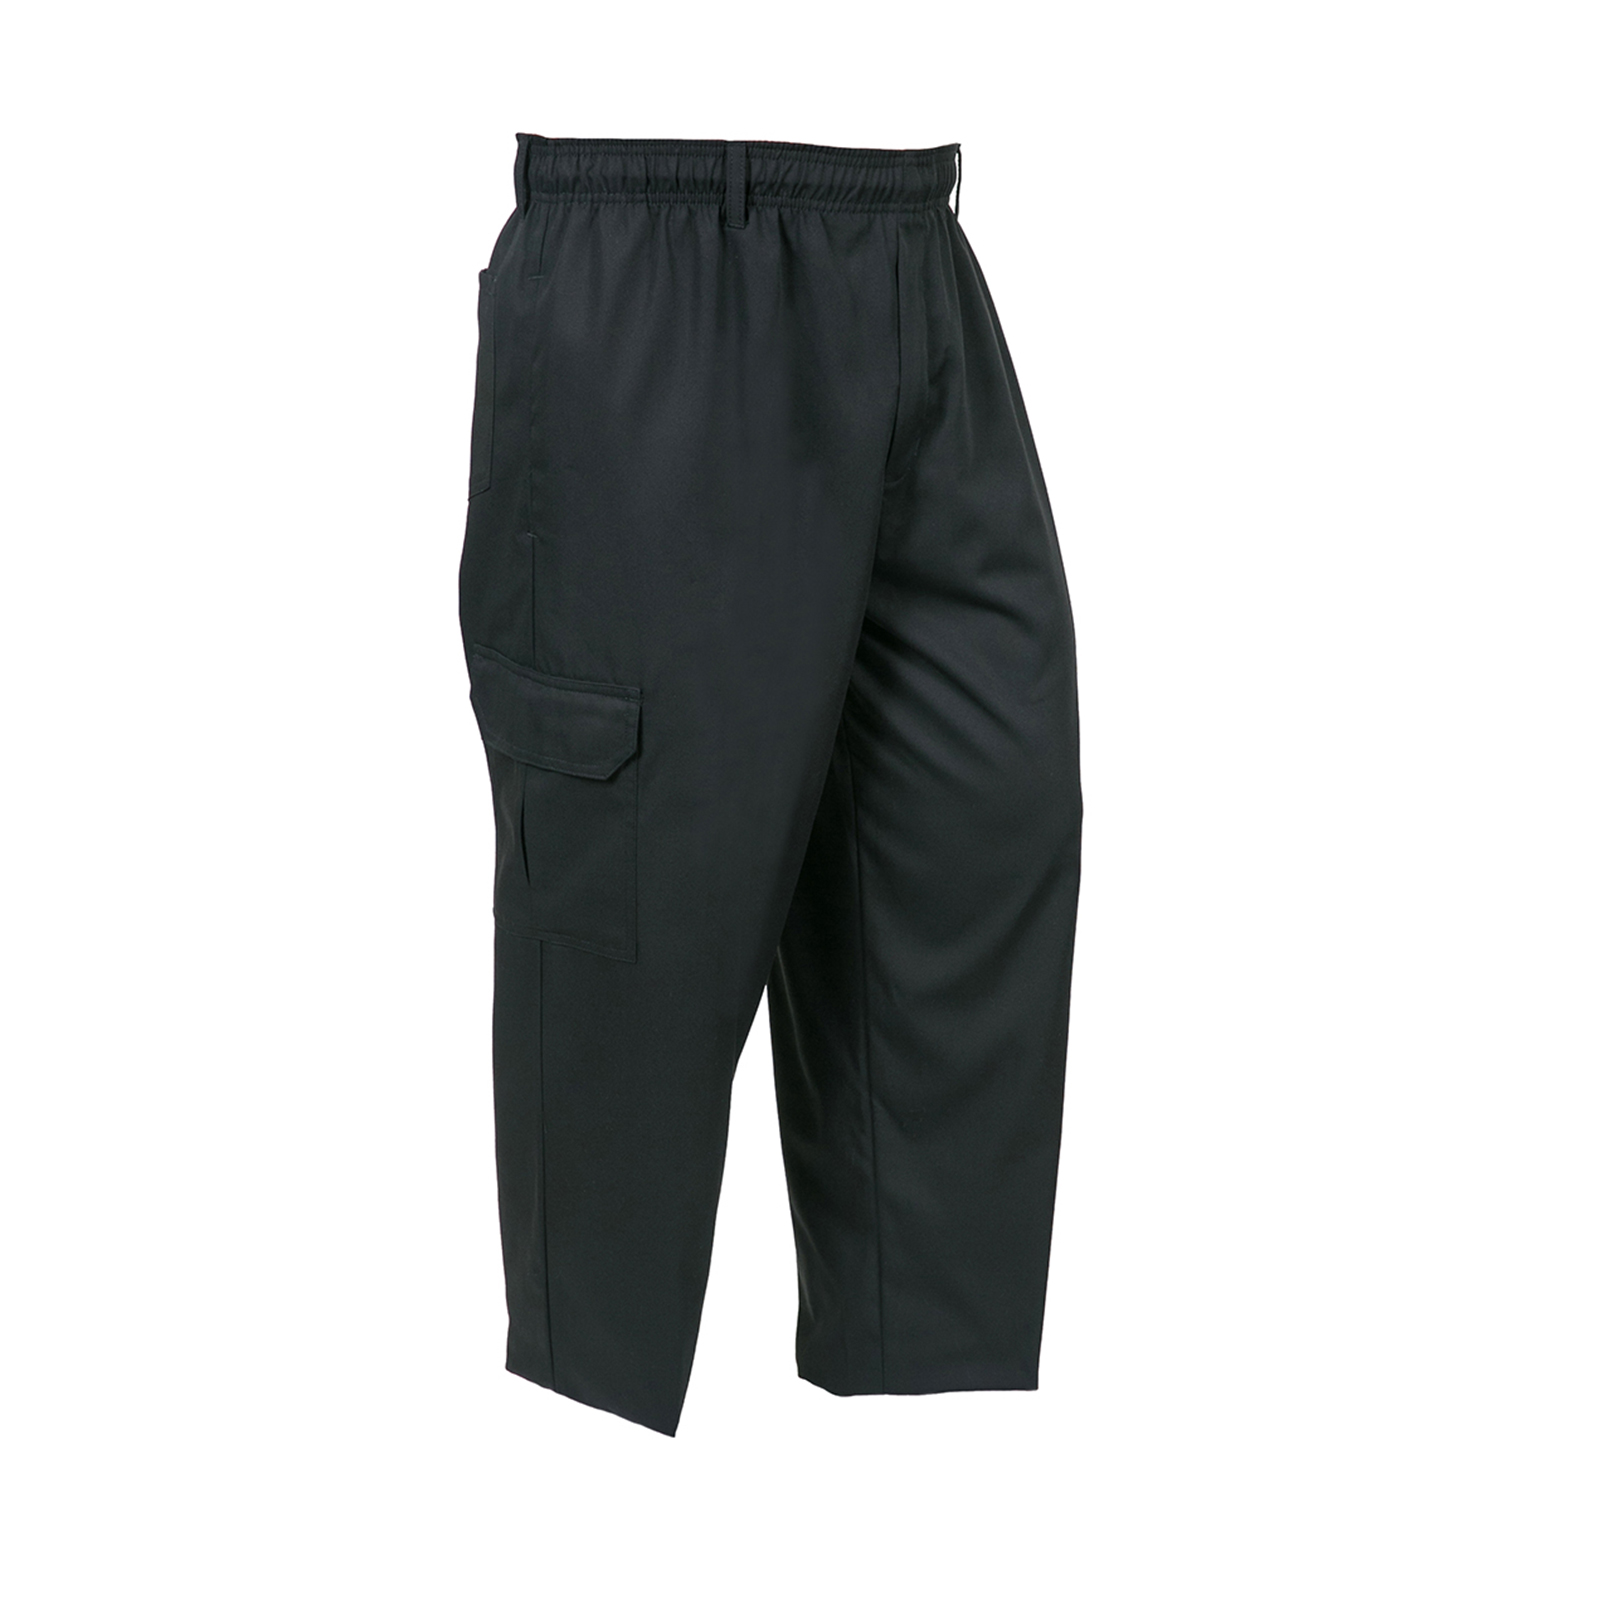 Mercer Culinary M61090BK4X chef's pants